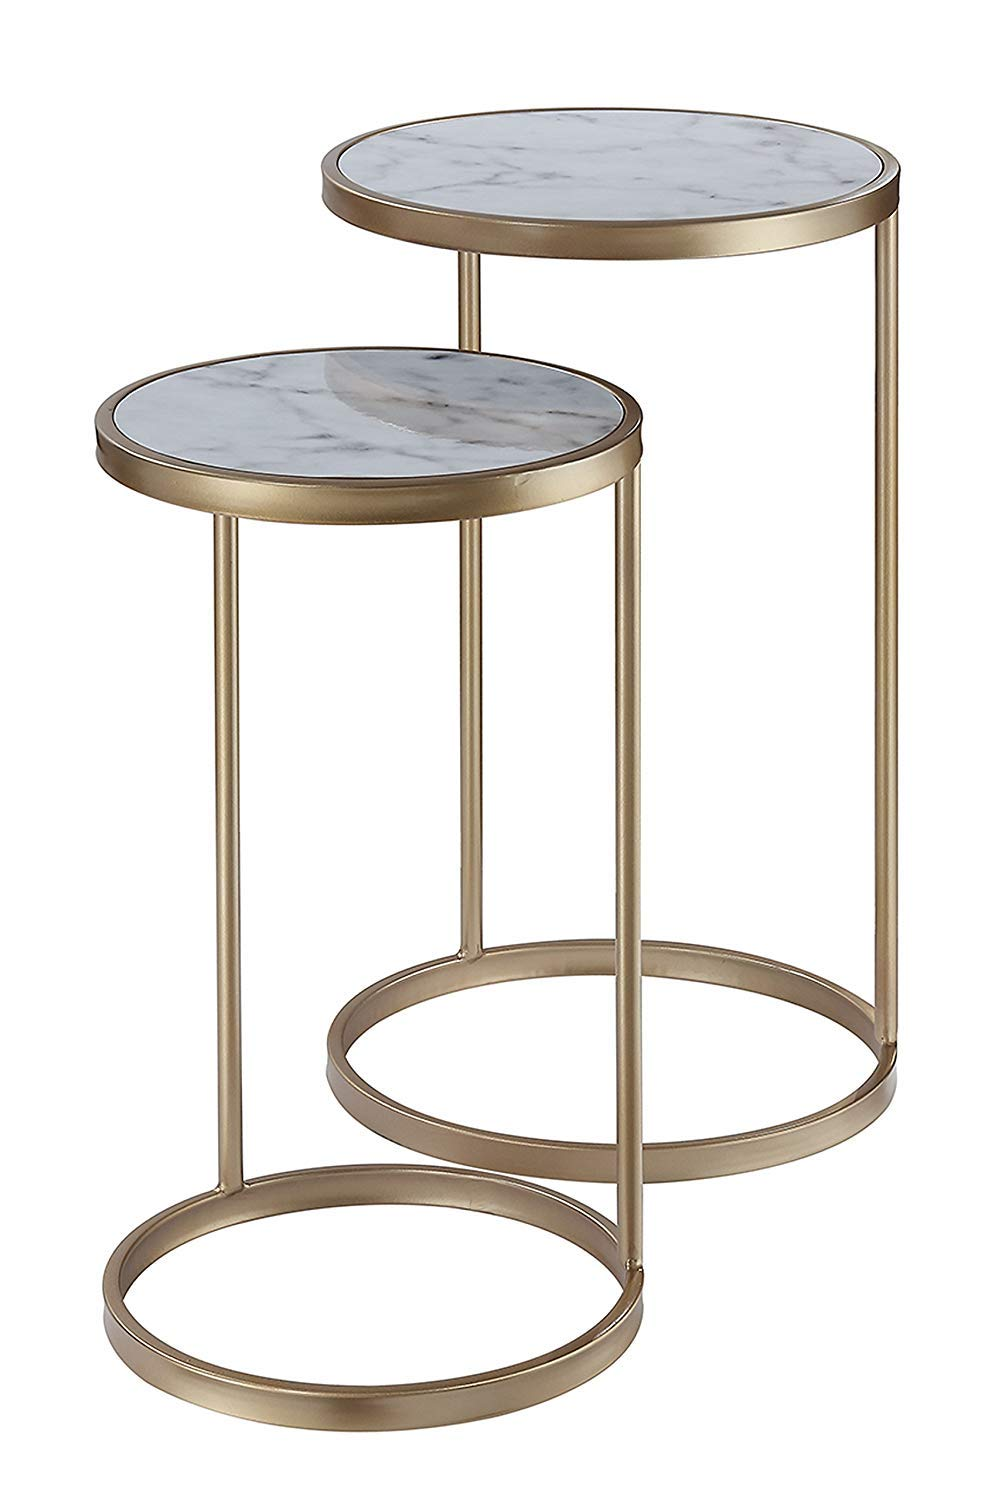 Convenience Concepts Coast Nesting End Tables, Faux Marble/Gold by Convenience Concepts